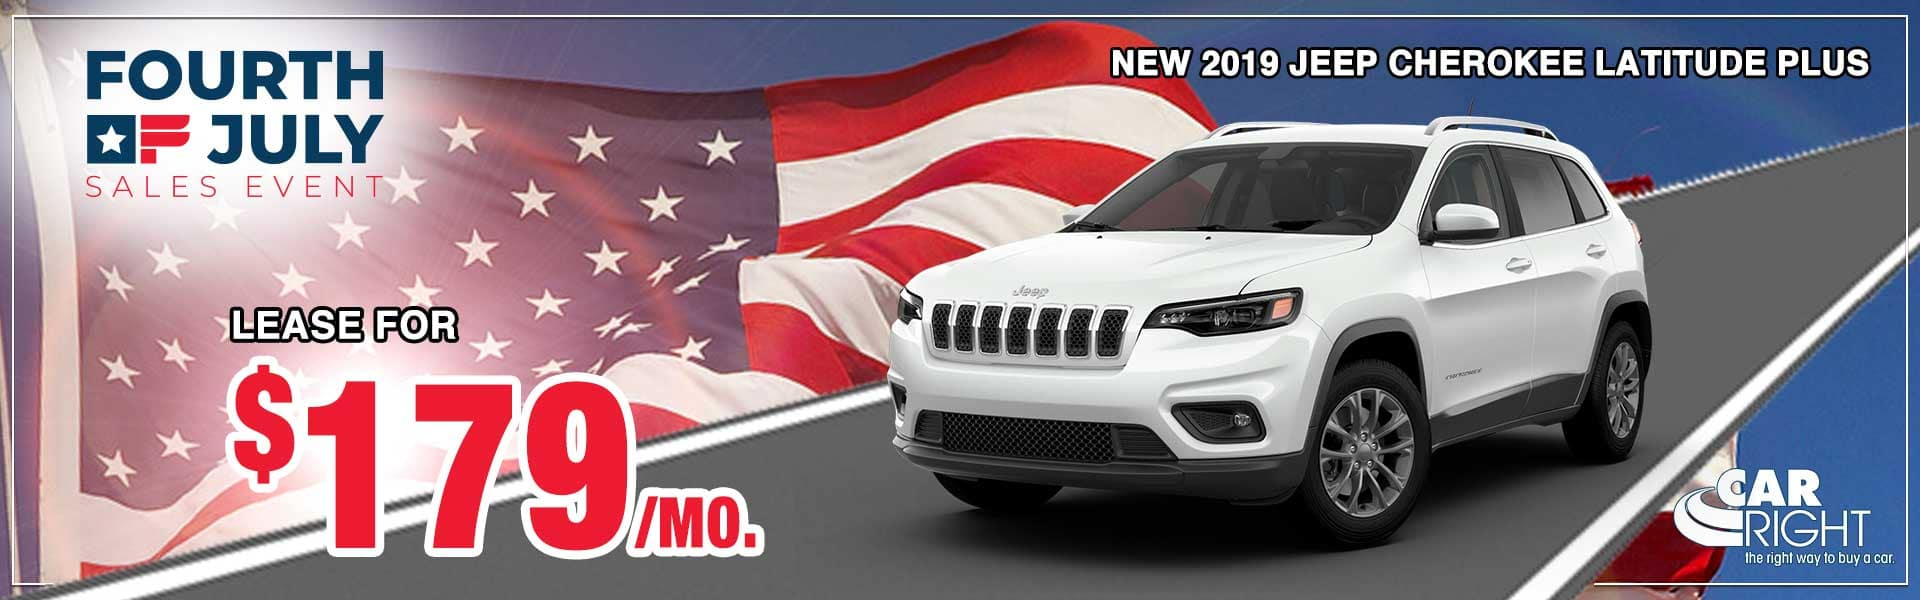 CarRight Chrysler Jeep Dodge Ram Fuso. Moon Township, PA. New, Used, parts, accessories, service. The right way to buy a car.2019 Jeep Cherokee latitude plus 4x4